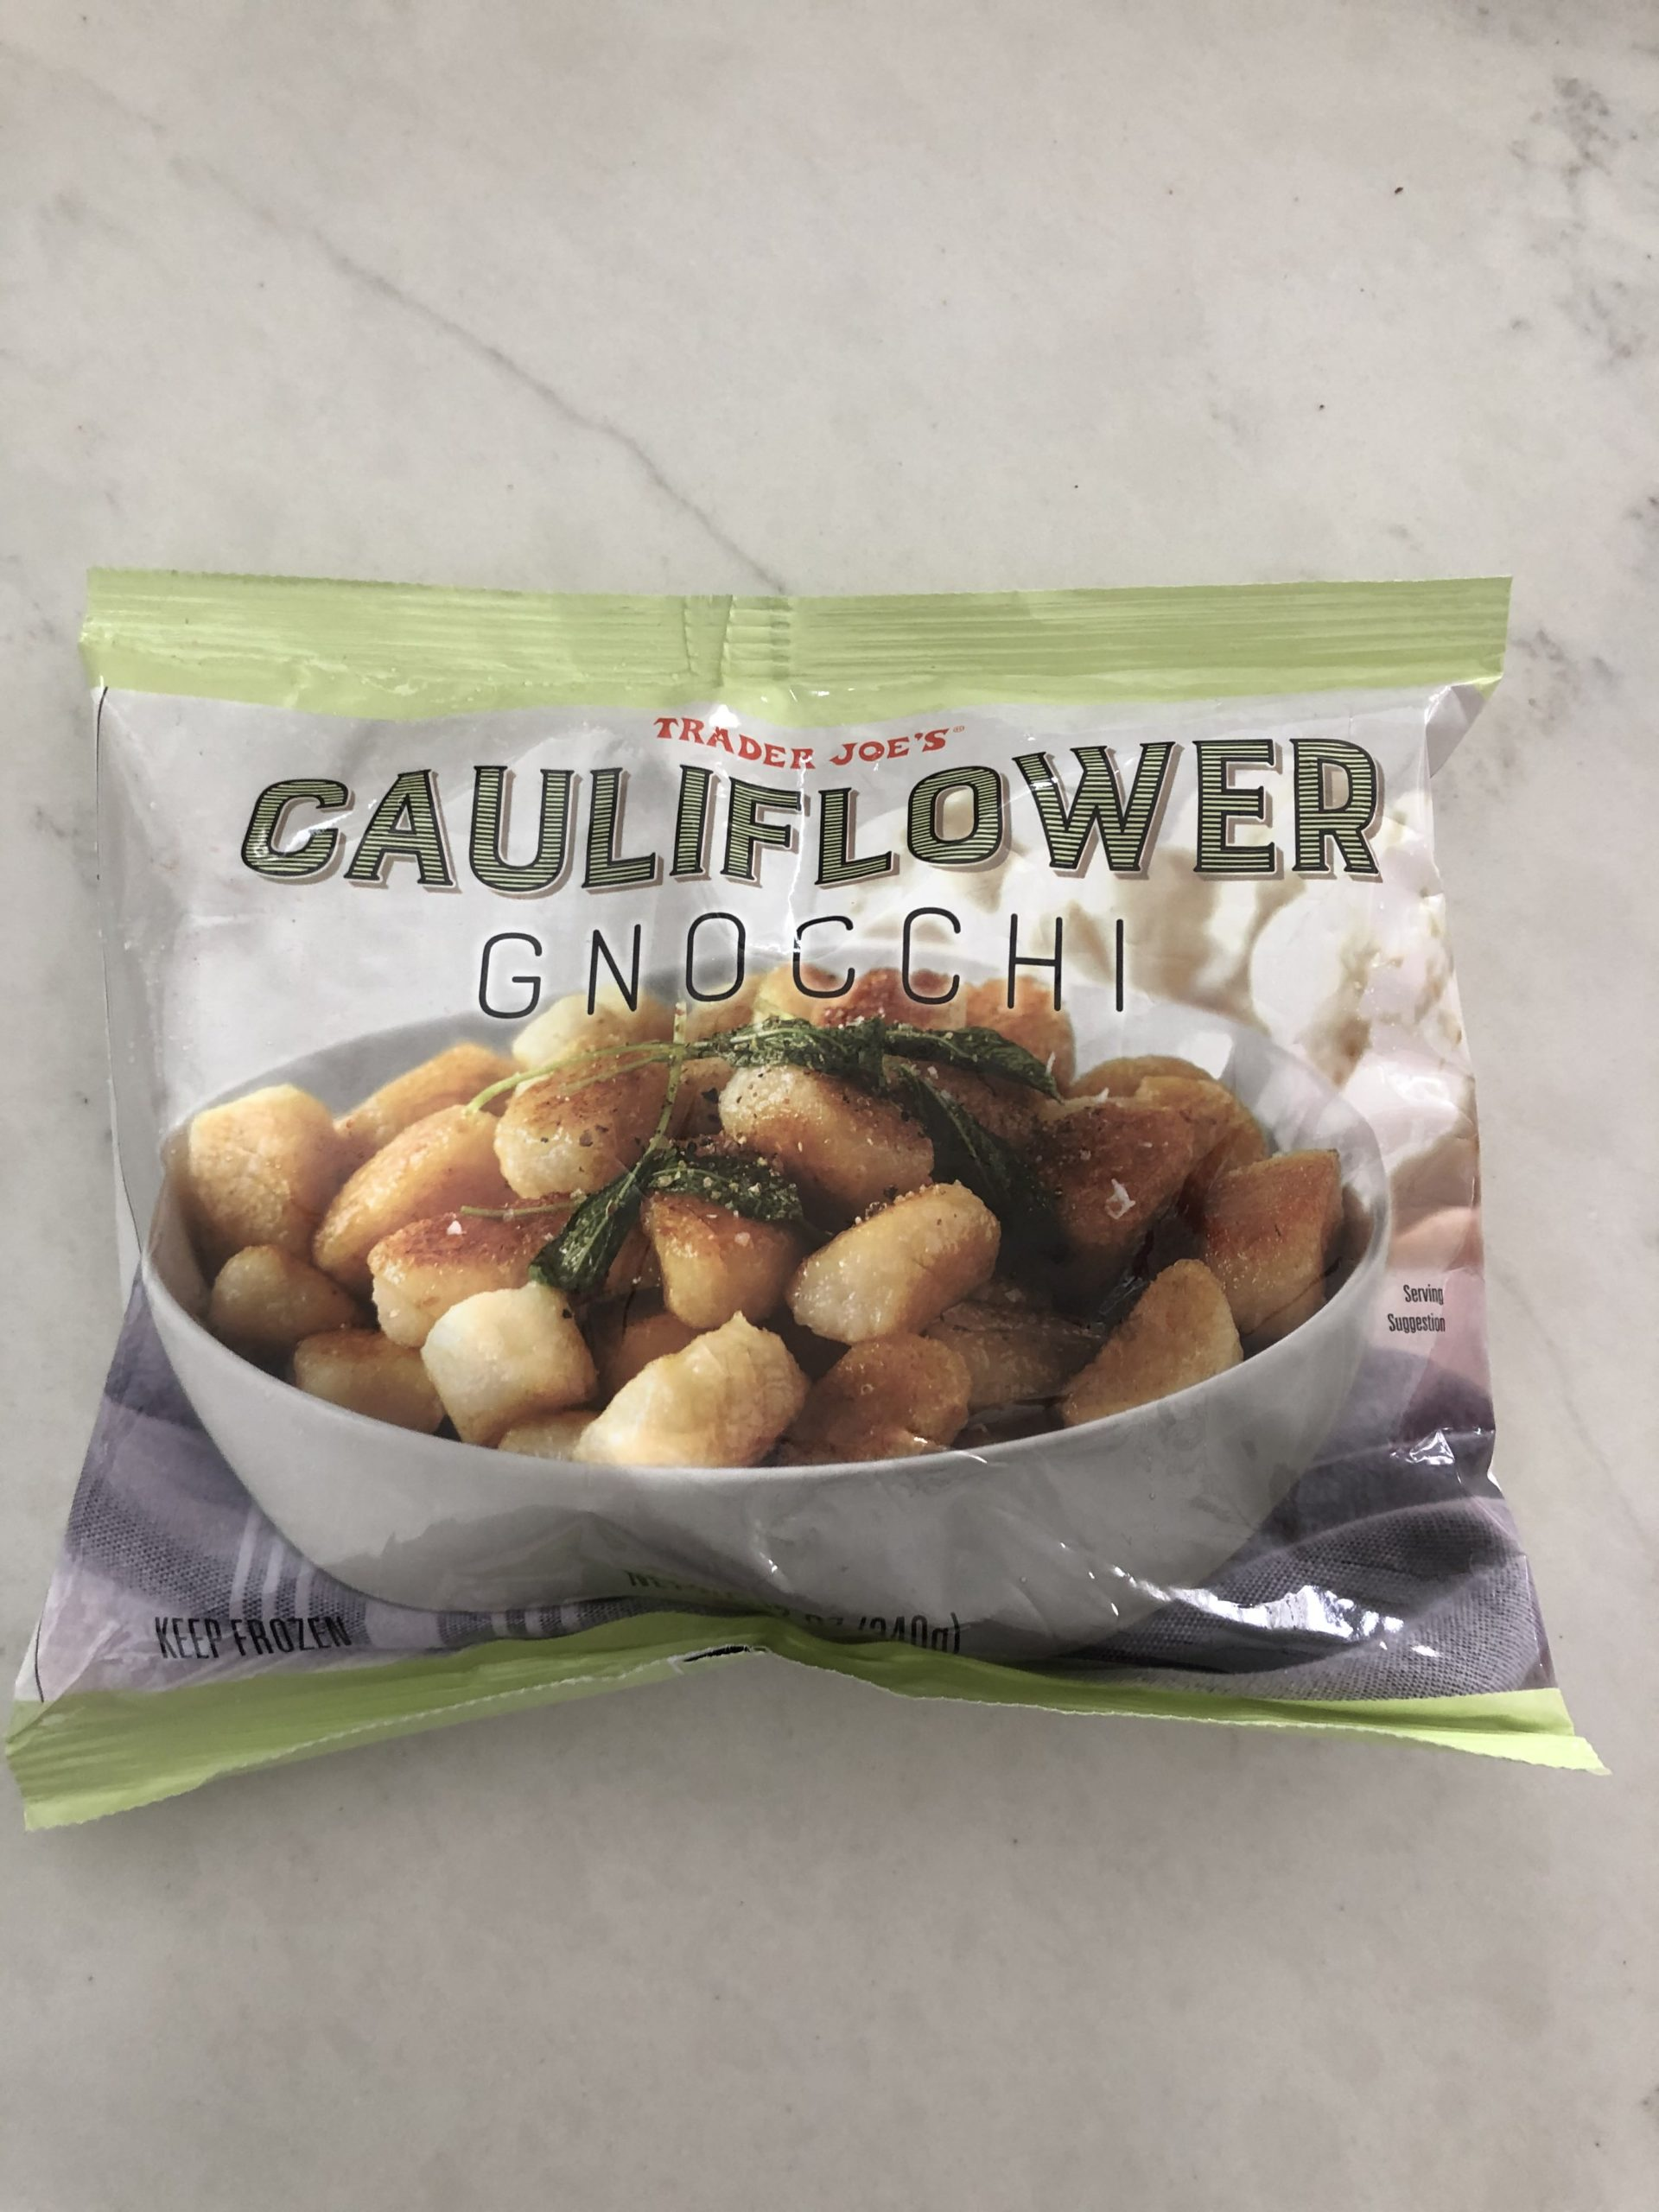 a bag of frozen cauliflower gnocchi by trader joes